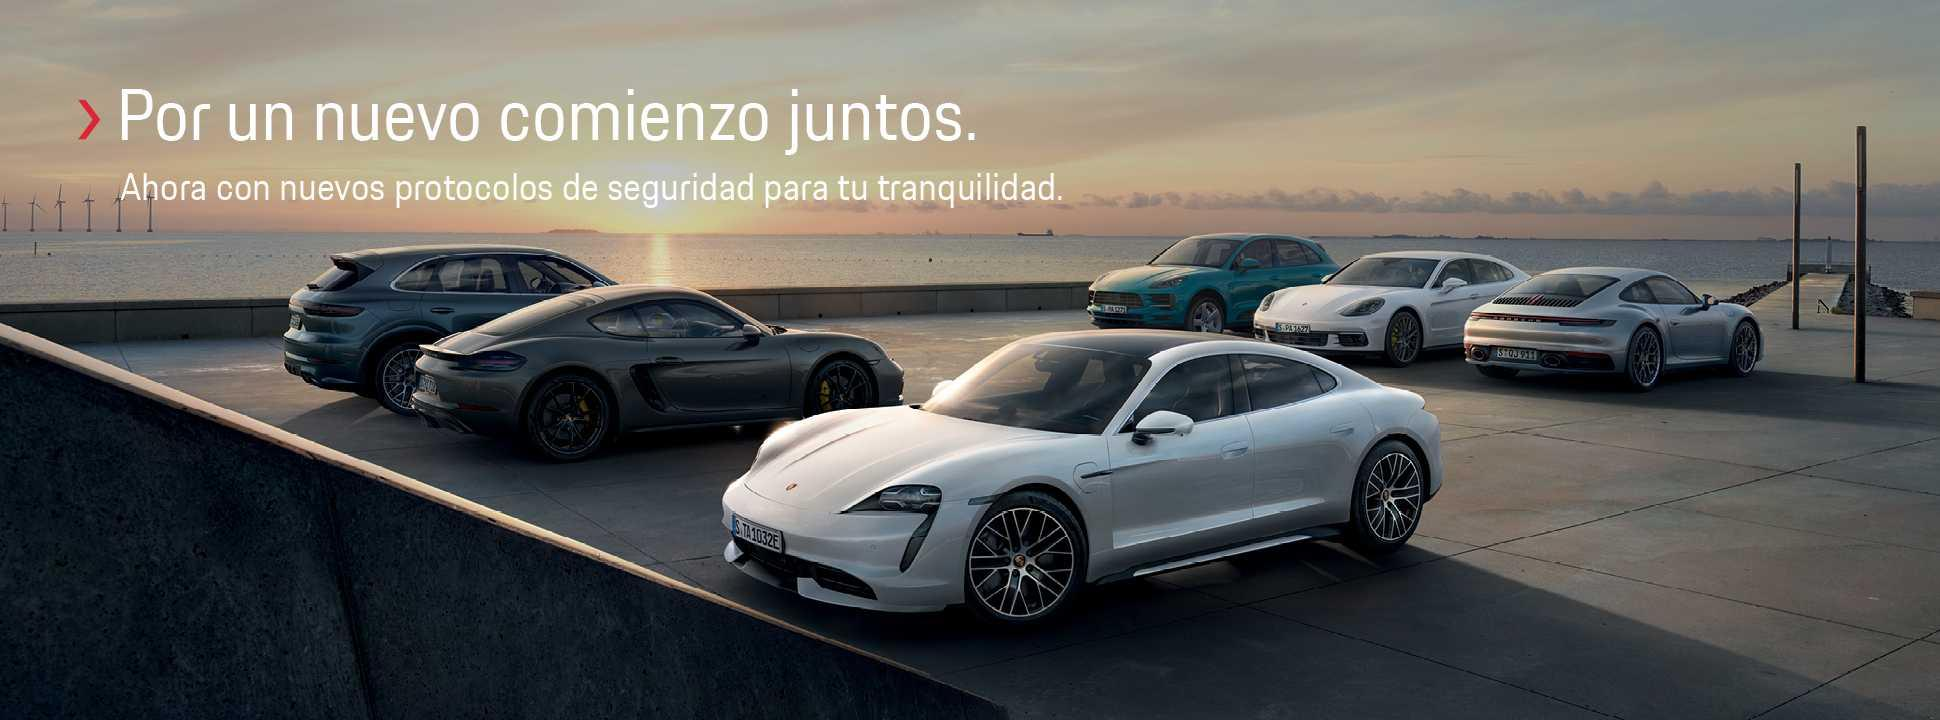 Porsche Center Santo Domingo - Aviso importante